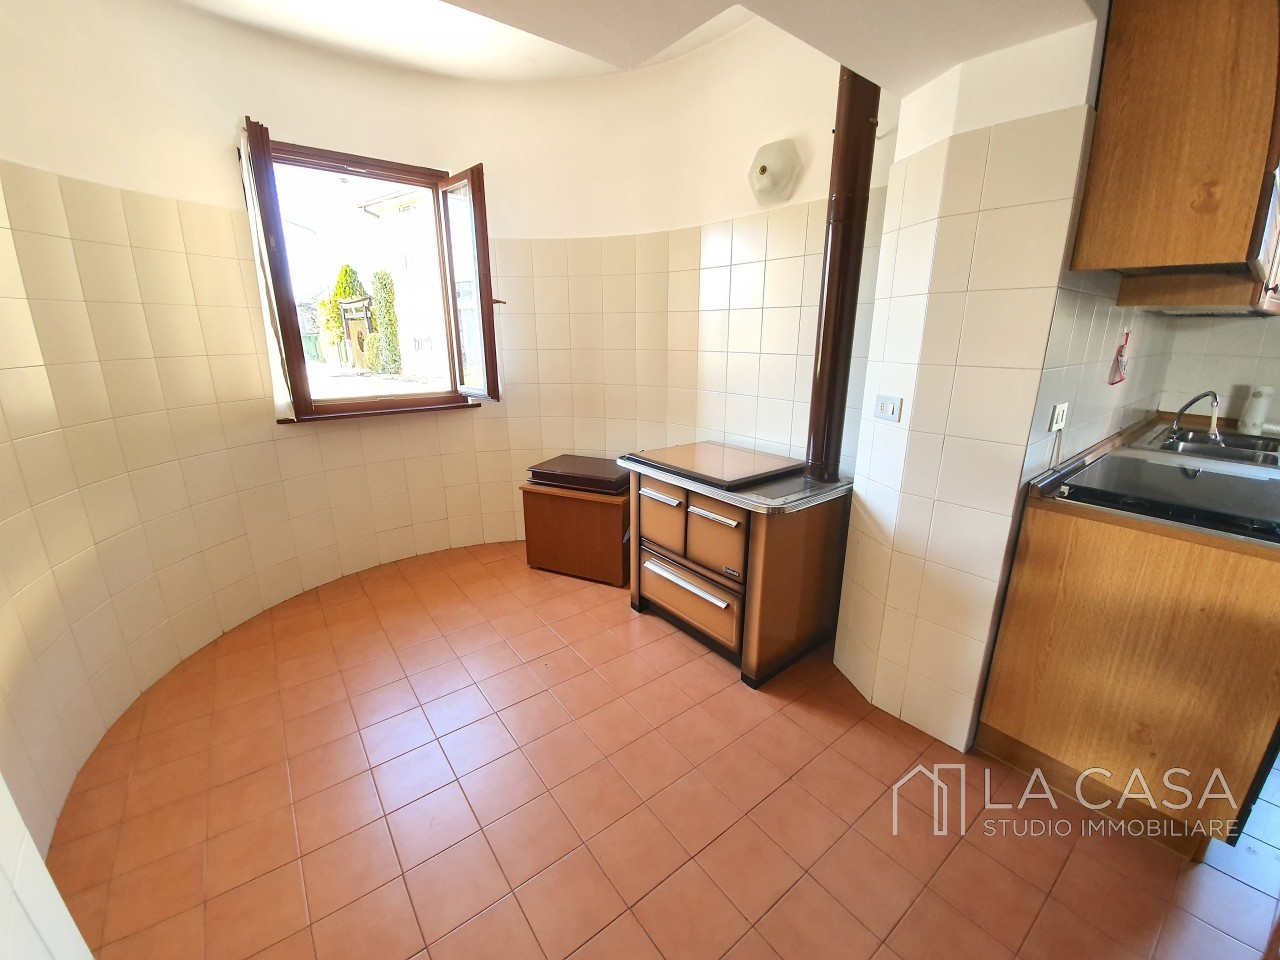 Casa indipendente in Linea - Rif.C6 https://images.gestionaleimmobiliare.it/foto/annunci/191125/2114313/1280x1280/010__20191125_115612_wmk_1.jpg